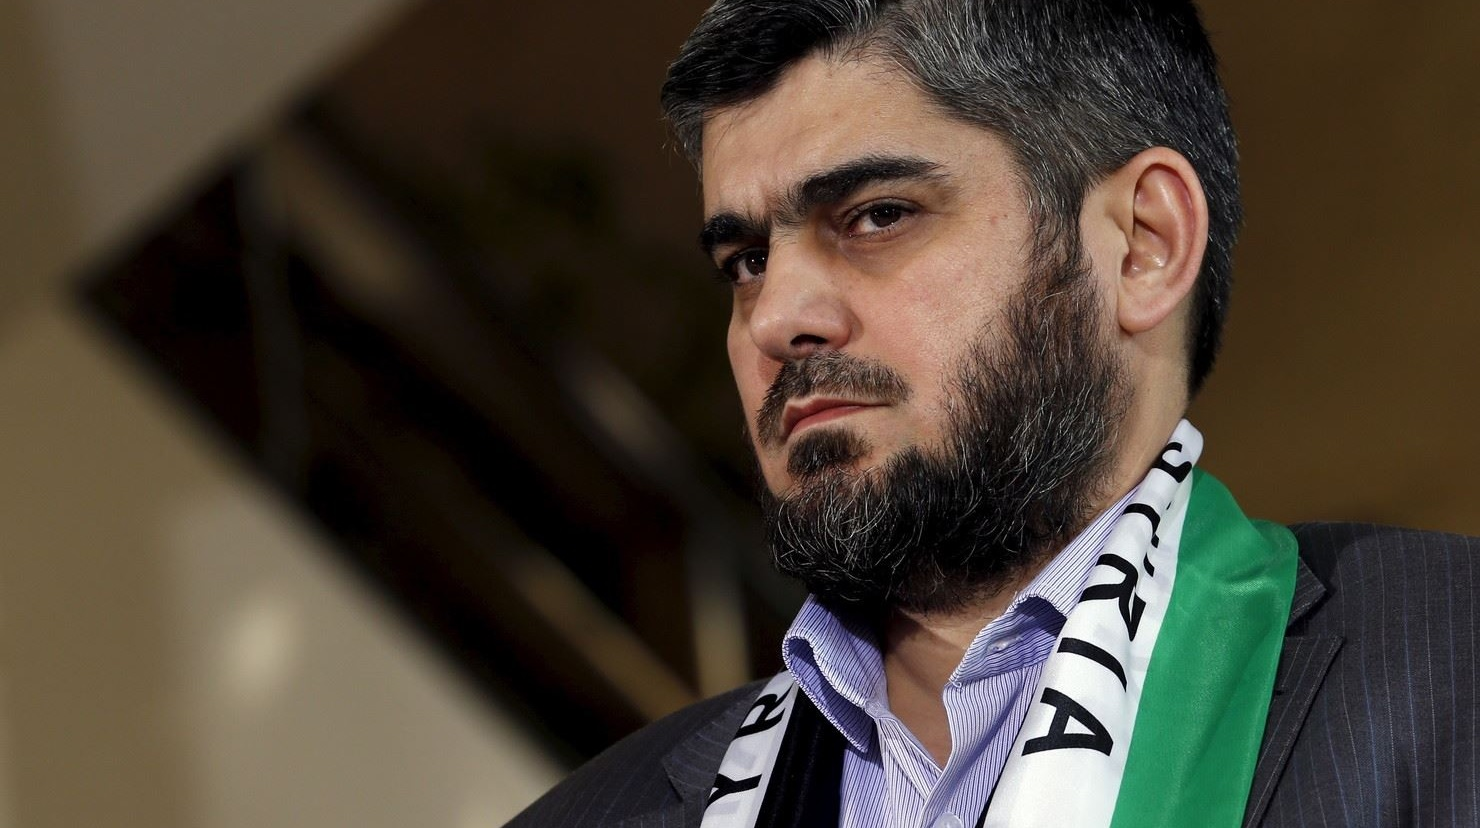 Jaysh al-Islam Leader Steals Tens Of Millions Of Dollars And Resigns - Report